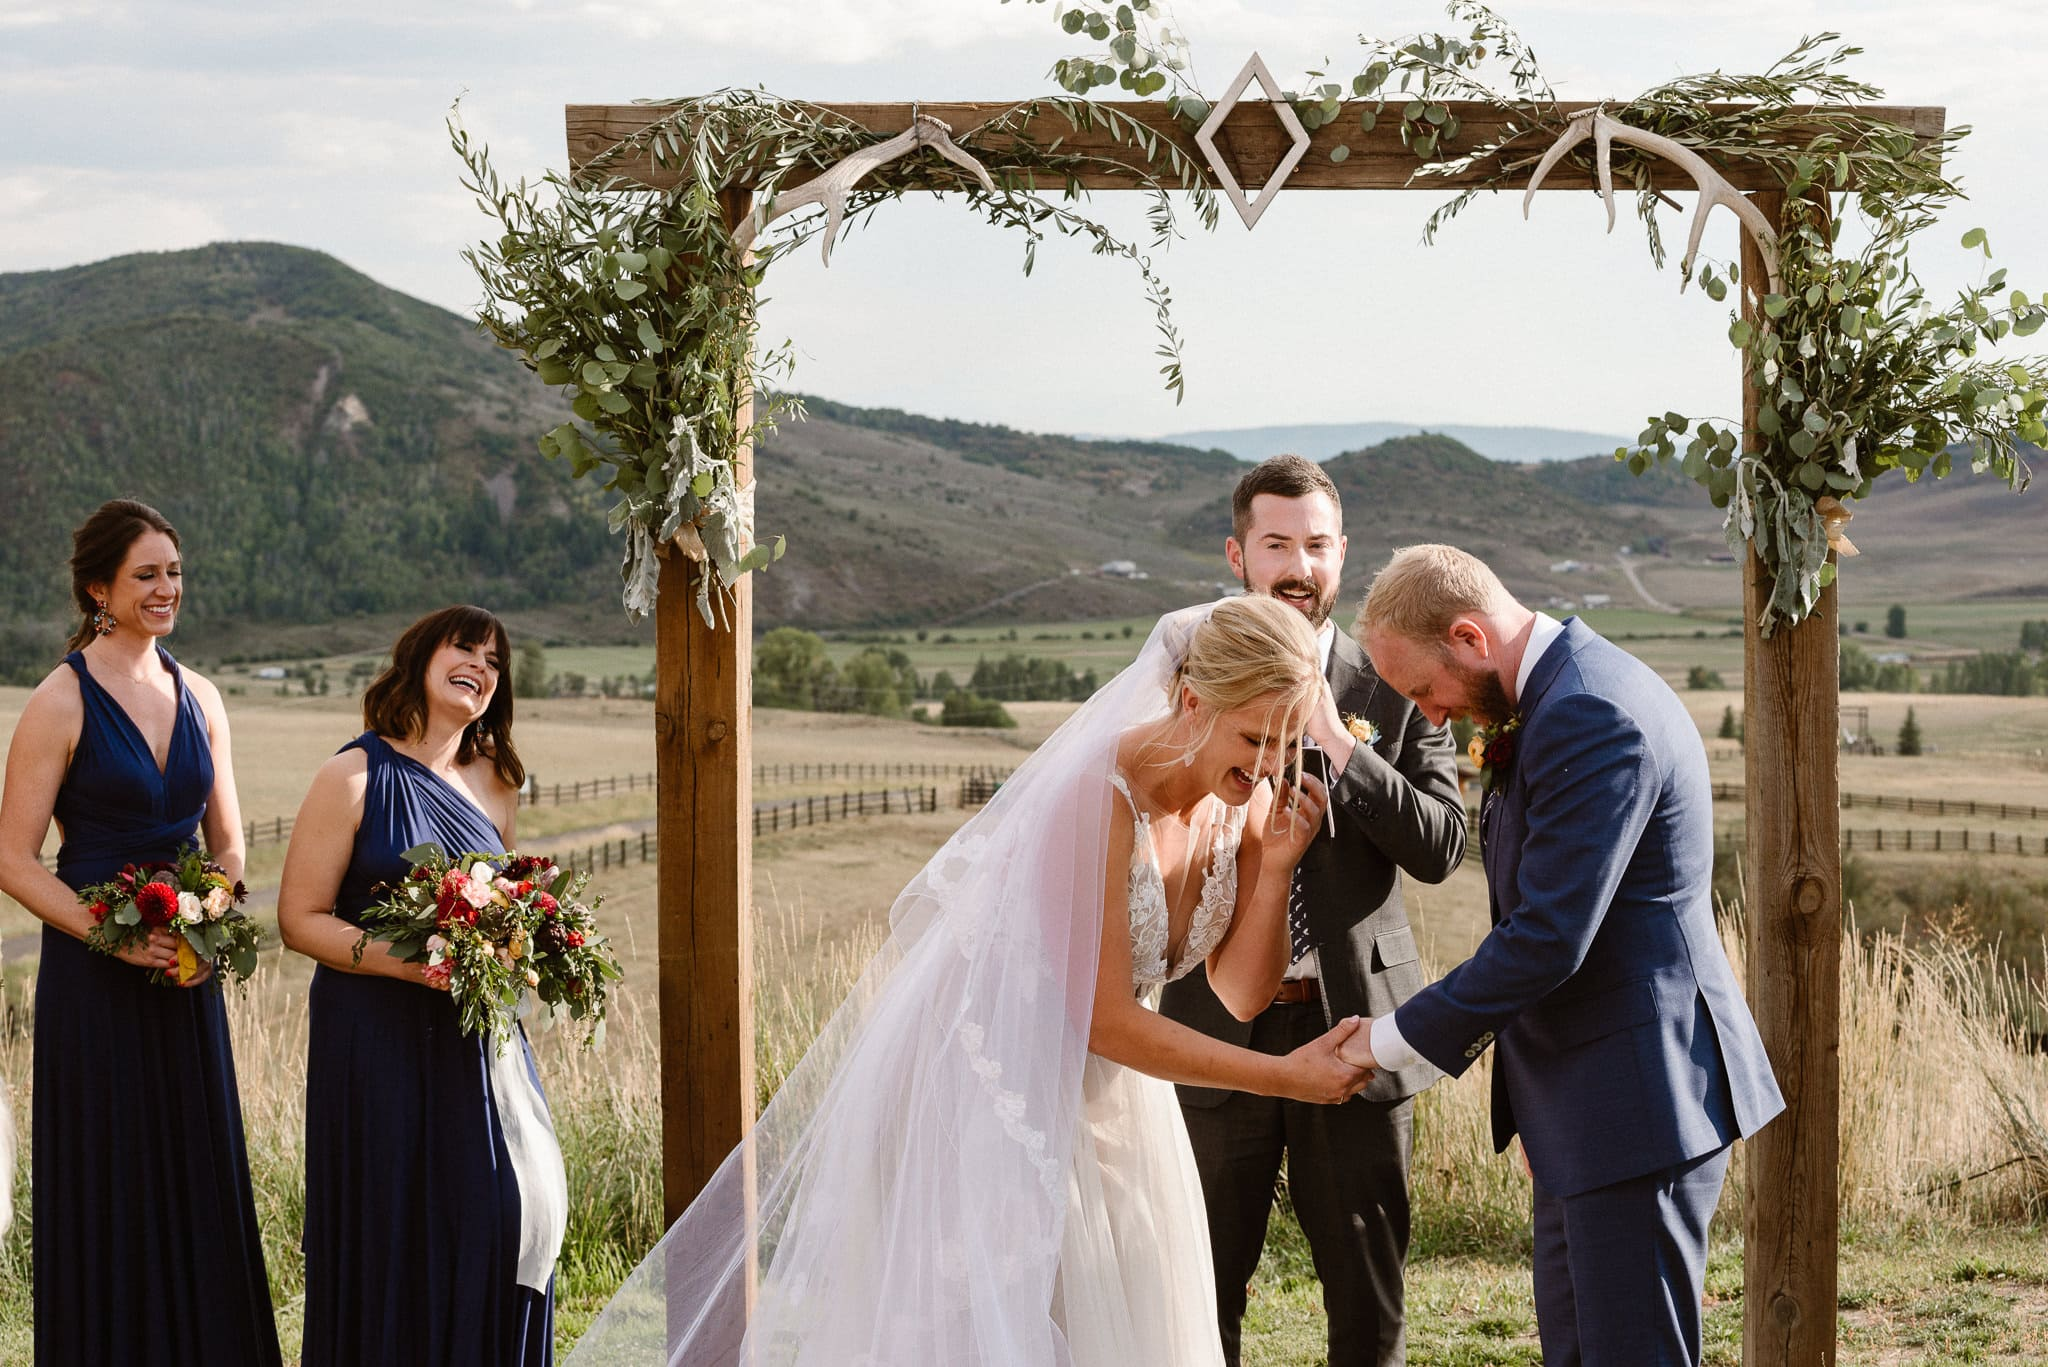 Steamboat Springs wedding photographer, La Joya Dulce wedding, Colorado ranch wedding venues, outdoor wedding ceremony, Colorado wedding, Rocky Mountain wedding, ranch wedding, bride laughing